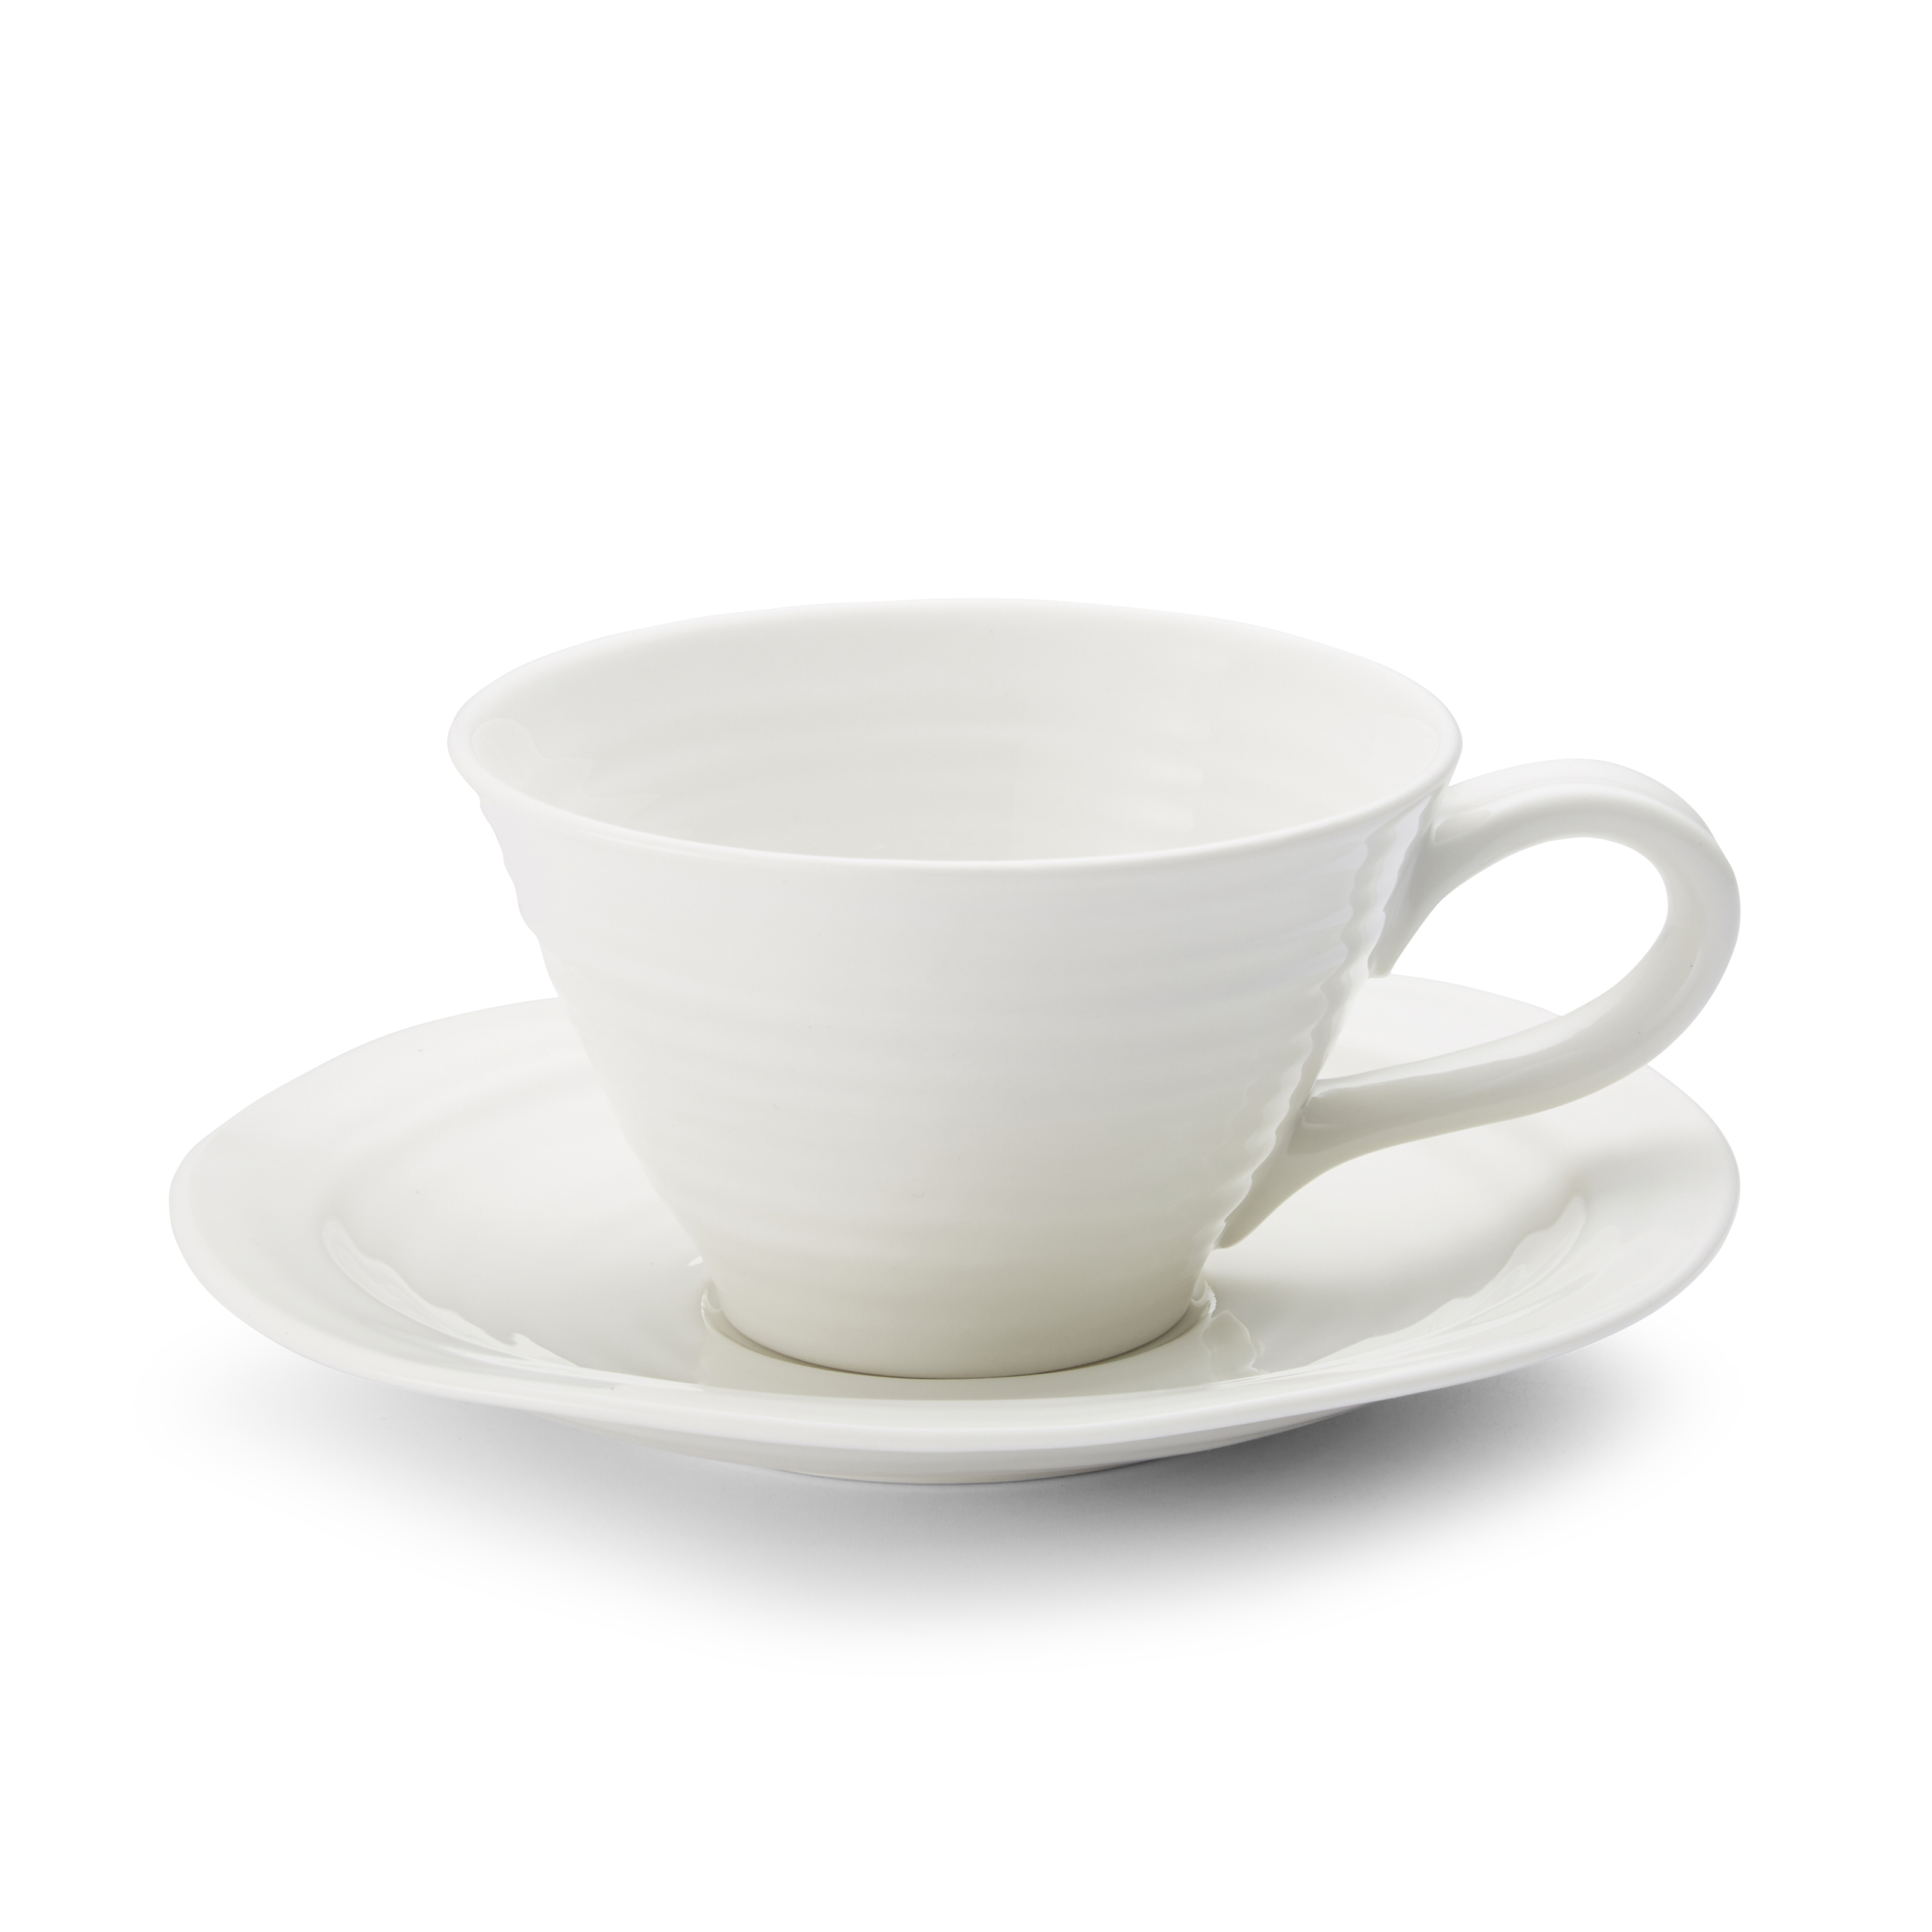 포트메리온 '소피 콘란' 찻잔 컵받침 4개 세트 Portmeirion Sophie Conran  White Set of 4 Teacups and Saucers